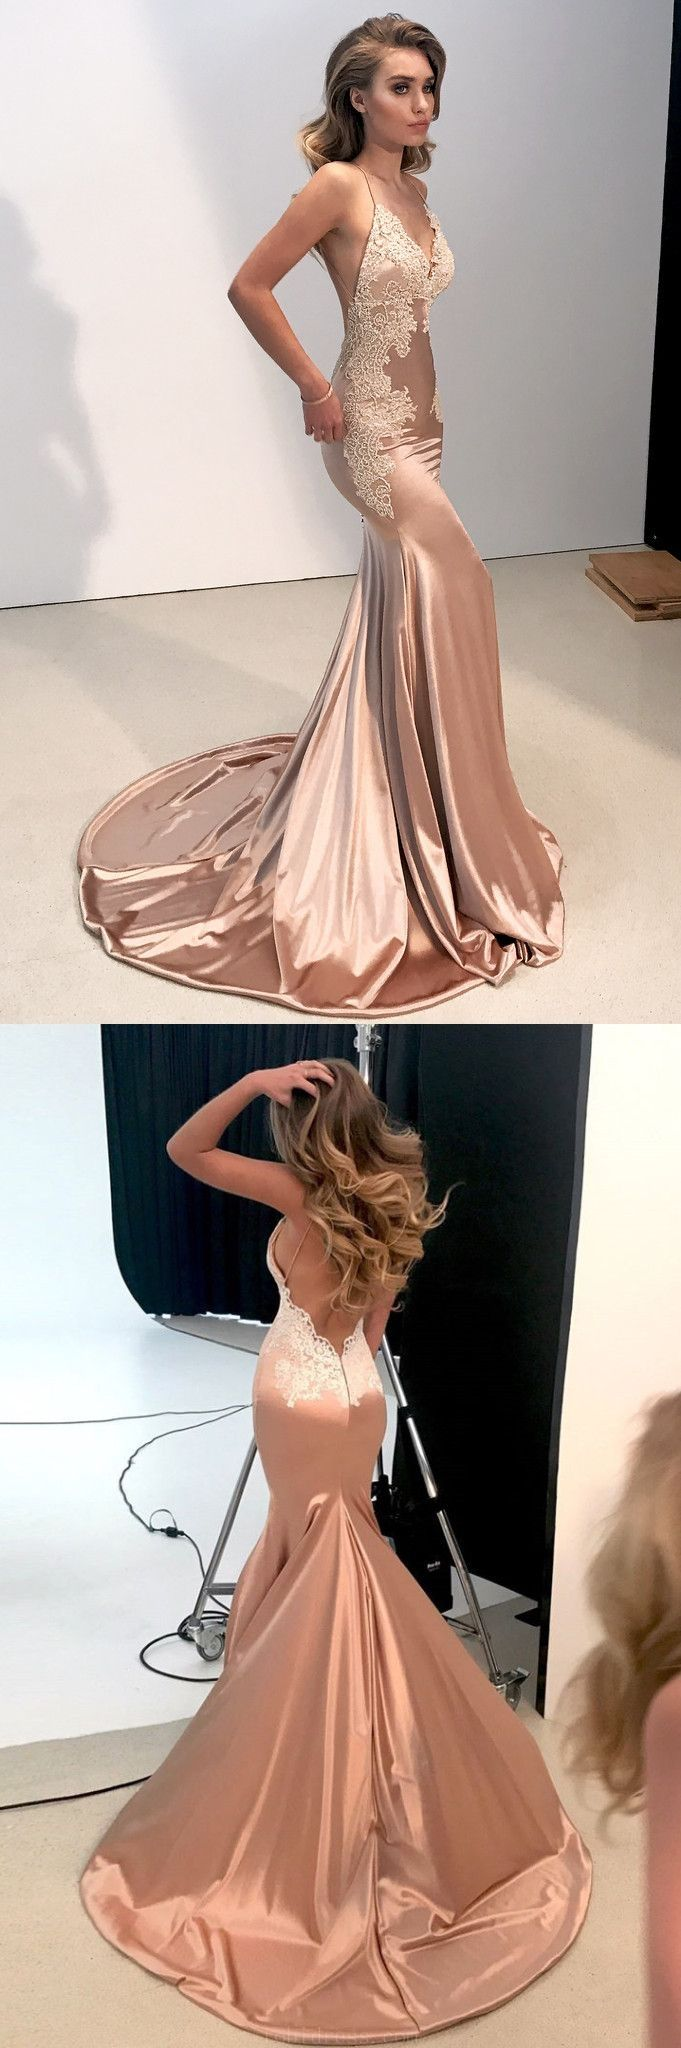 Custom made glorious prom dresses sexy long prom dresses open back